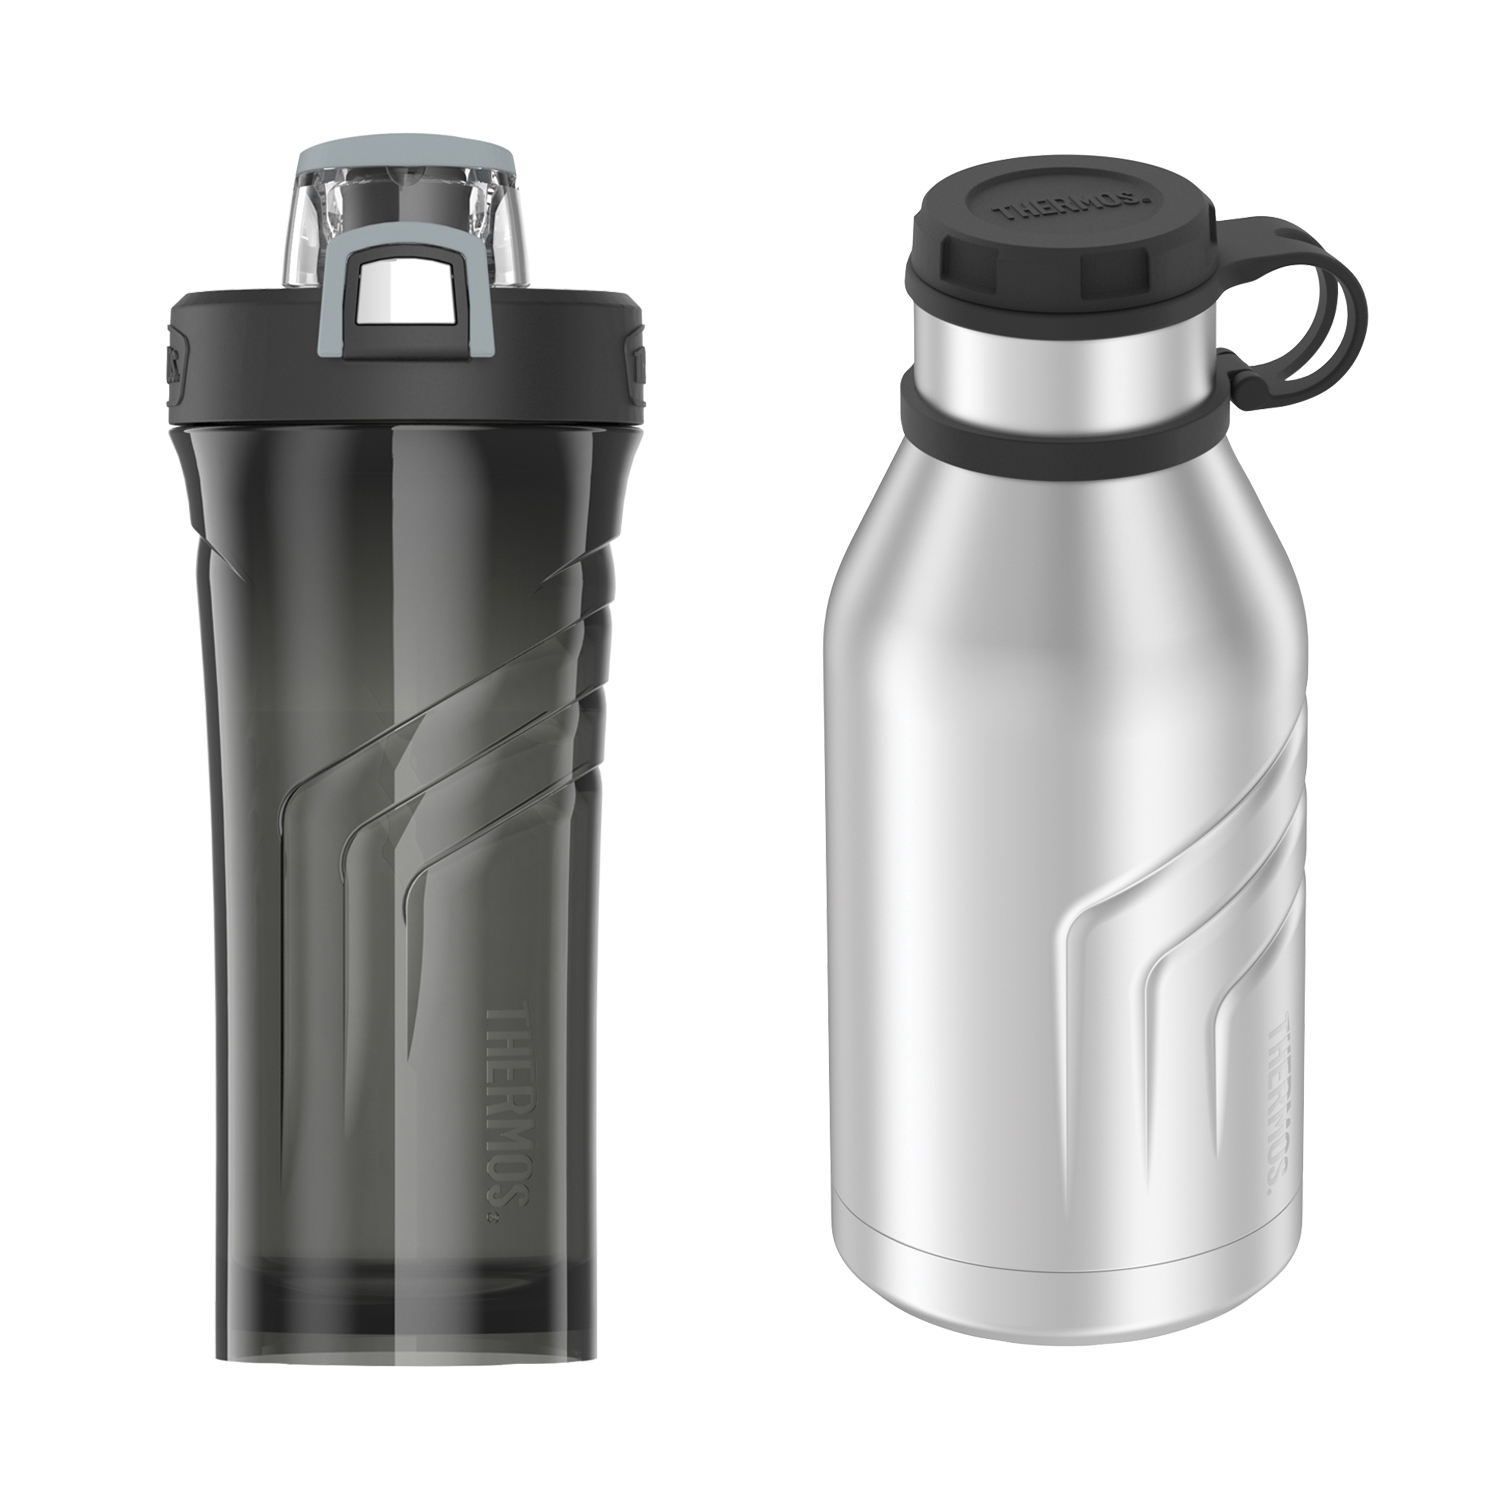 Thermos ELEMENT5 Vacuum Insulated 32-oz Beverage Bottle with Screw Top Lid, Stainless Steel & Thermos 24-Ounce Plastic Hydration Bottle, Black